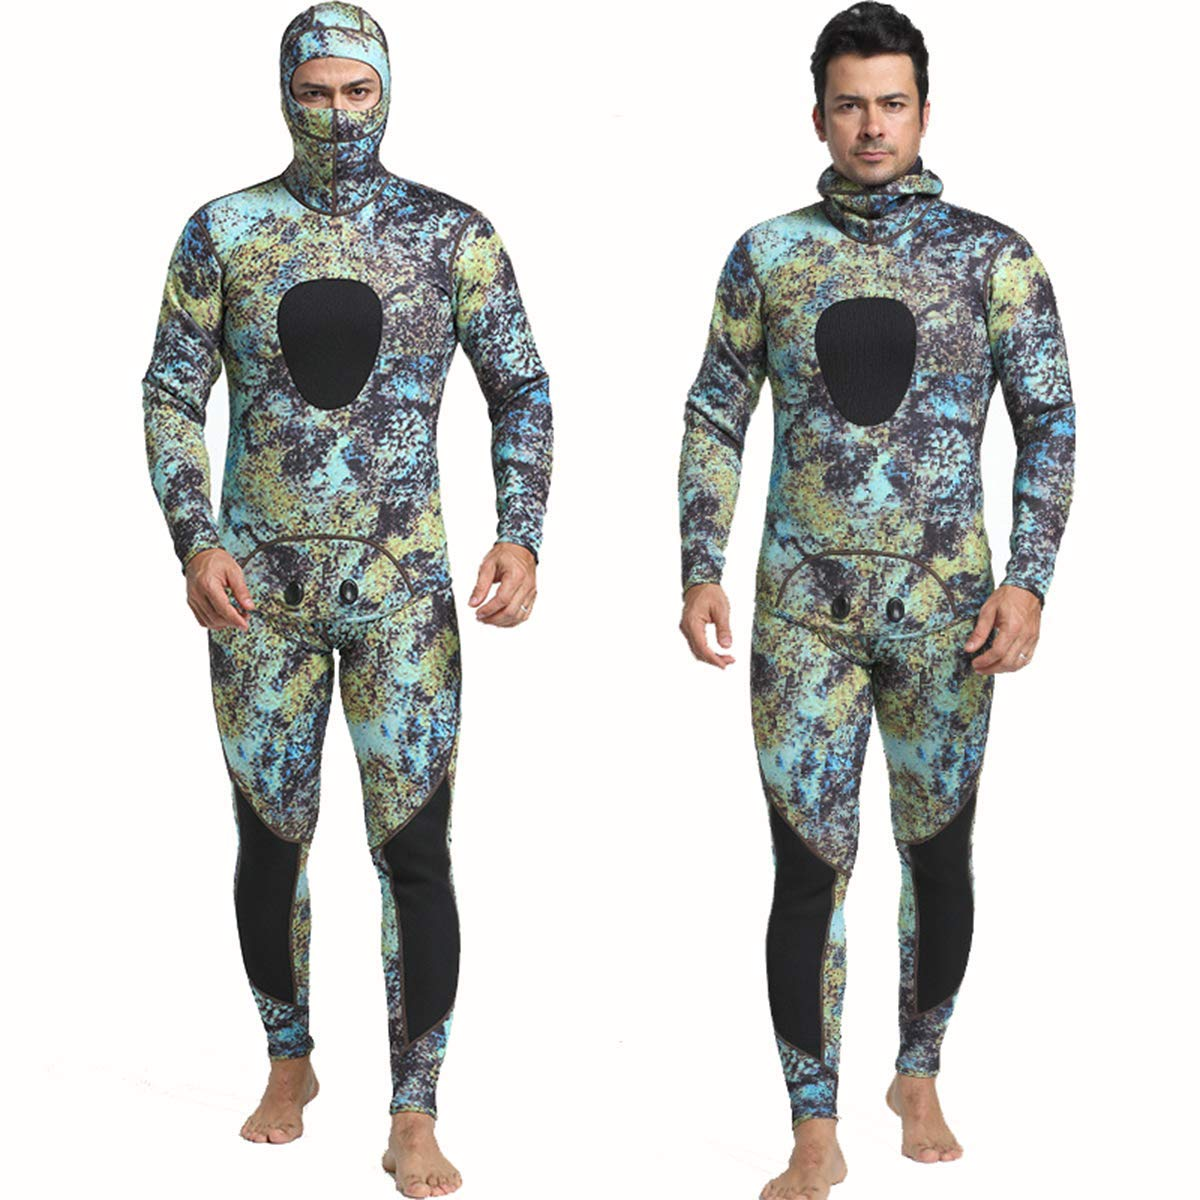 Nataly Osmann 3mm /1.5mm Camouflage Spearfishing Wetsuits 2-Pieces Hooded Scuba Diving Suit for Men